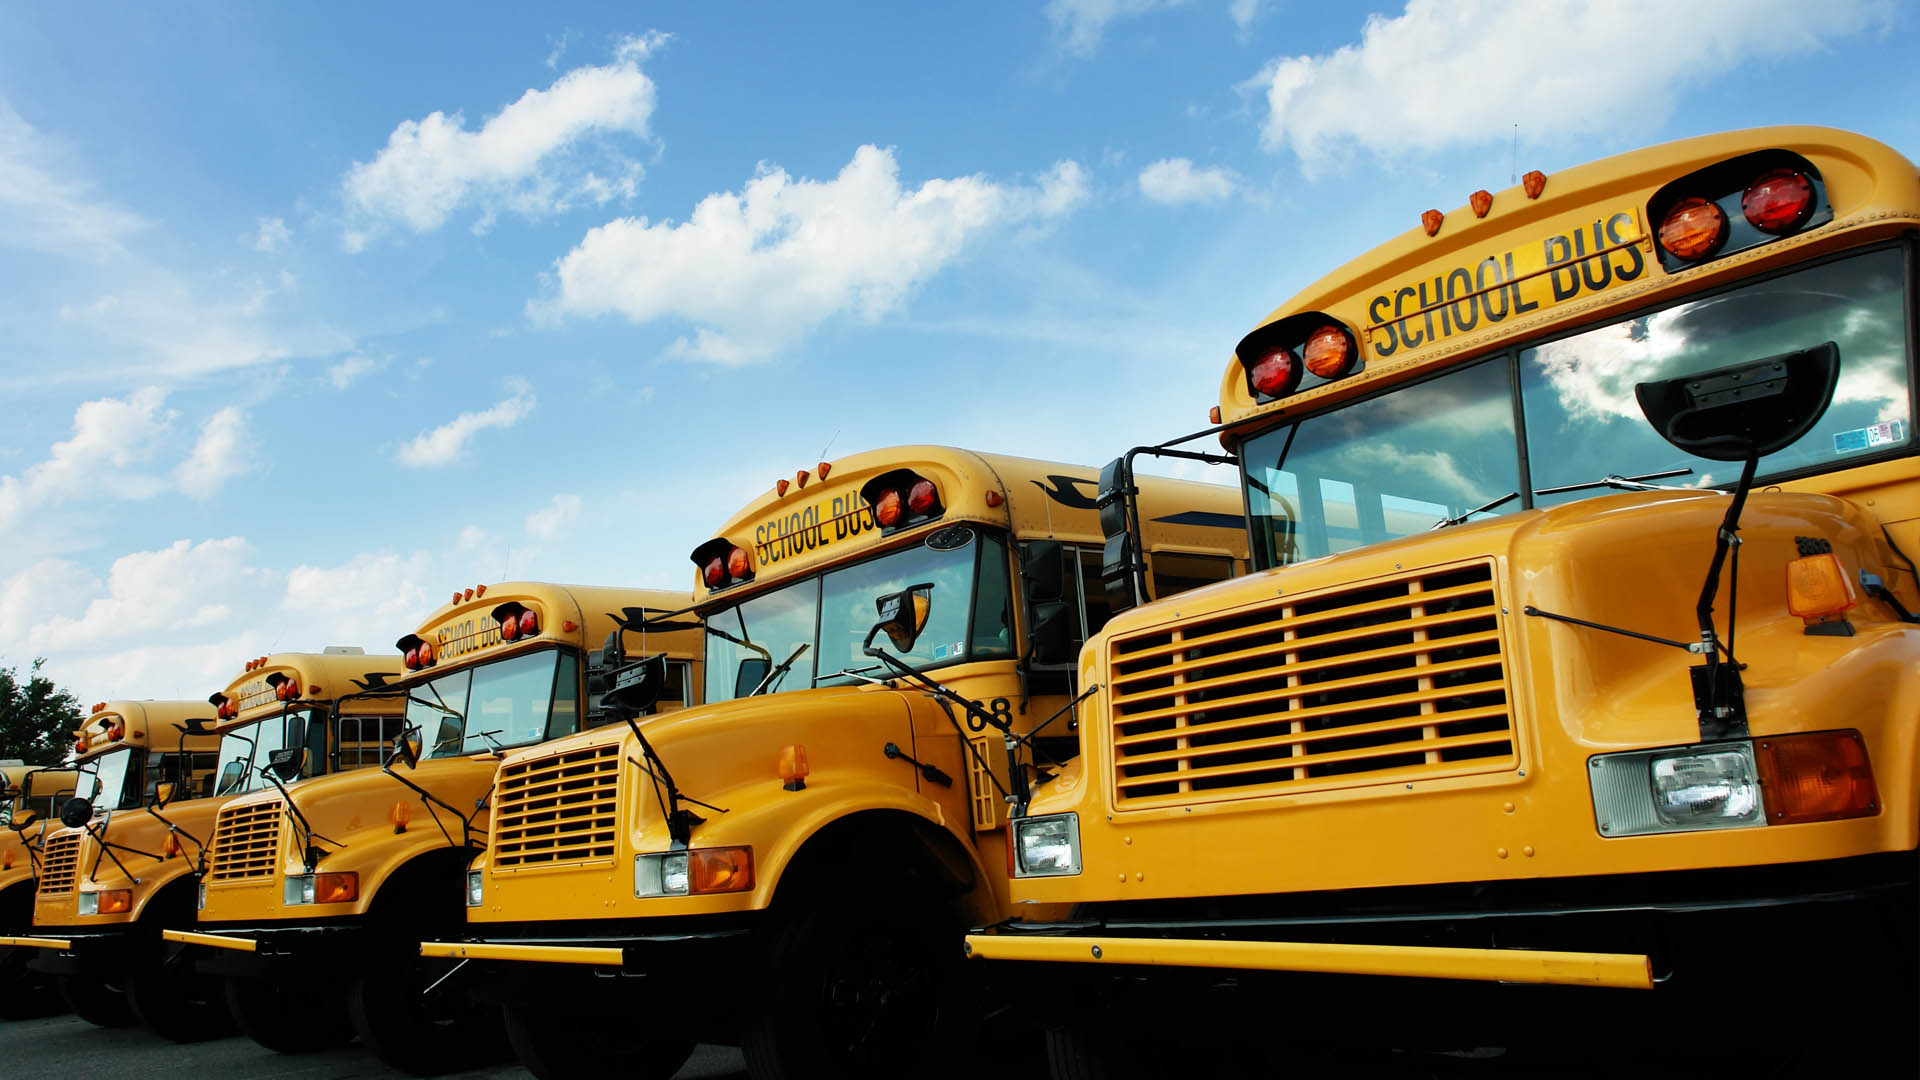 A line of yellow school buses under a bright blue sky